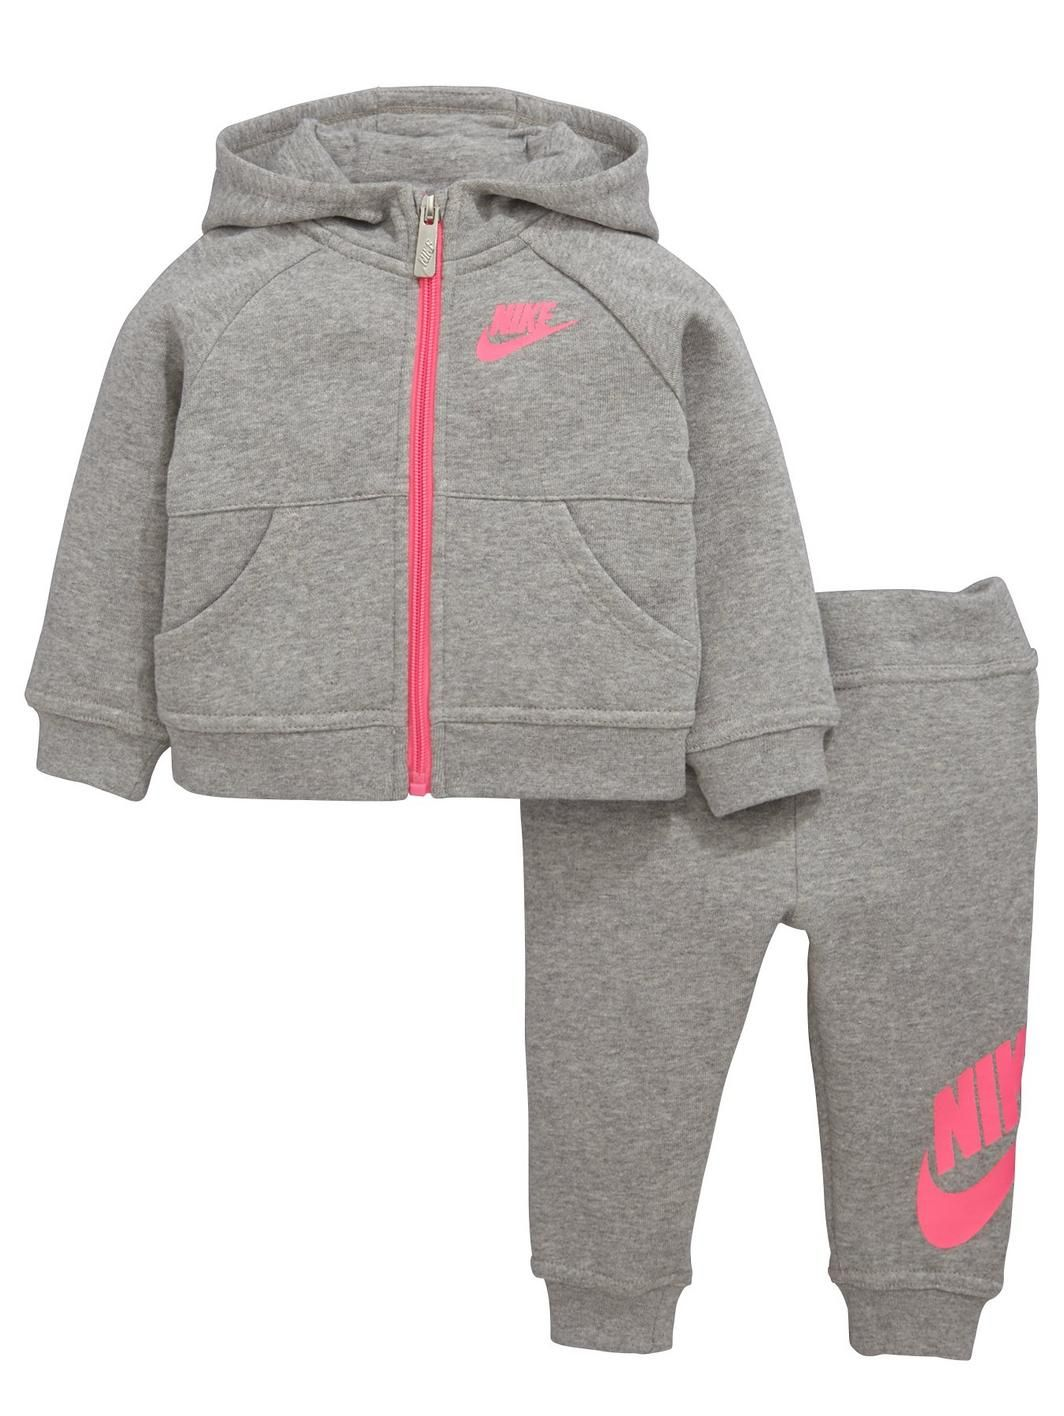 Nike Baby Girl Clothes Magnificent Nike Store $19 On  Pinterest  Babies Girls And Babies Clothes Decorating Design